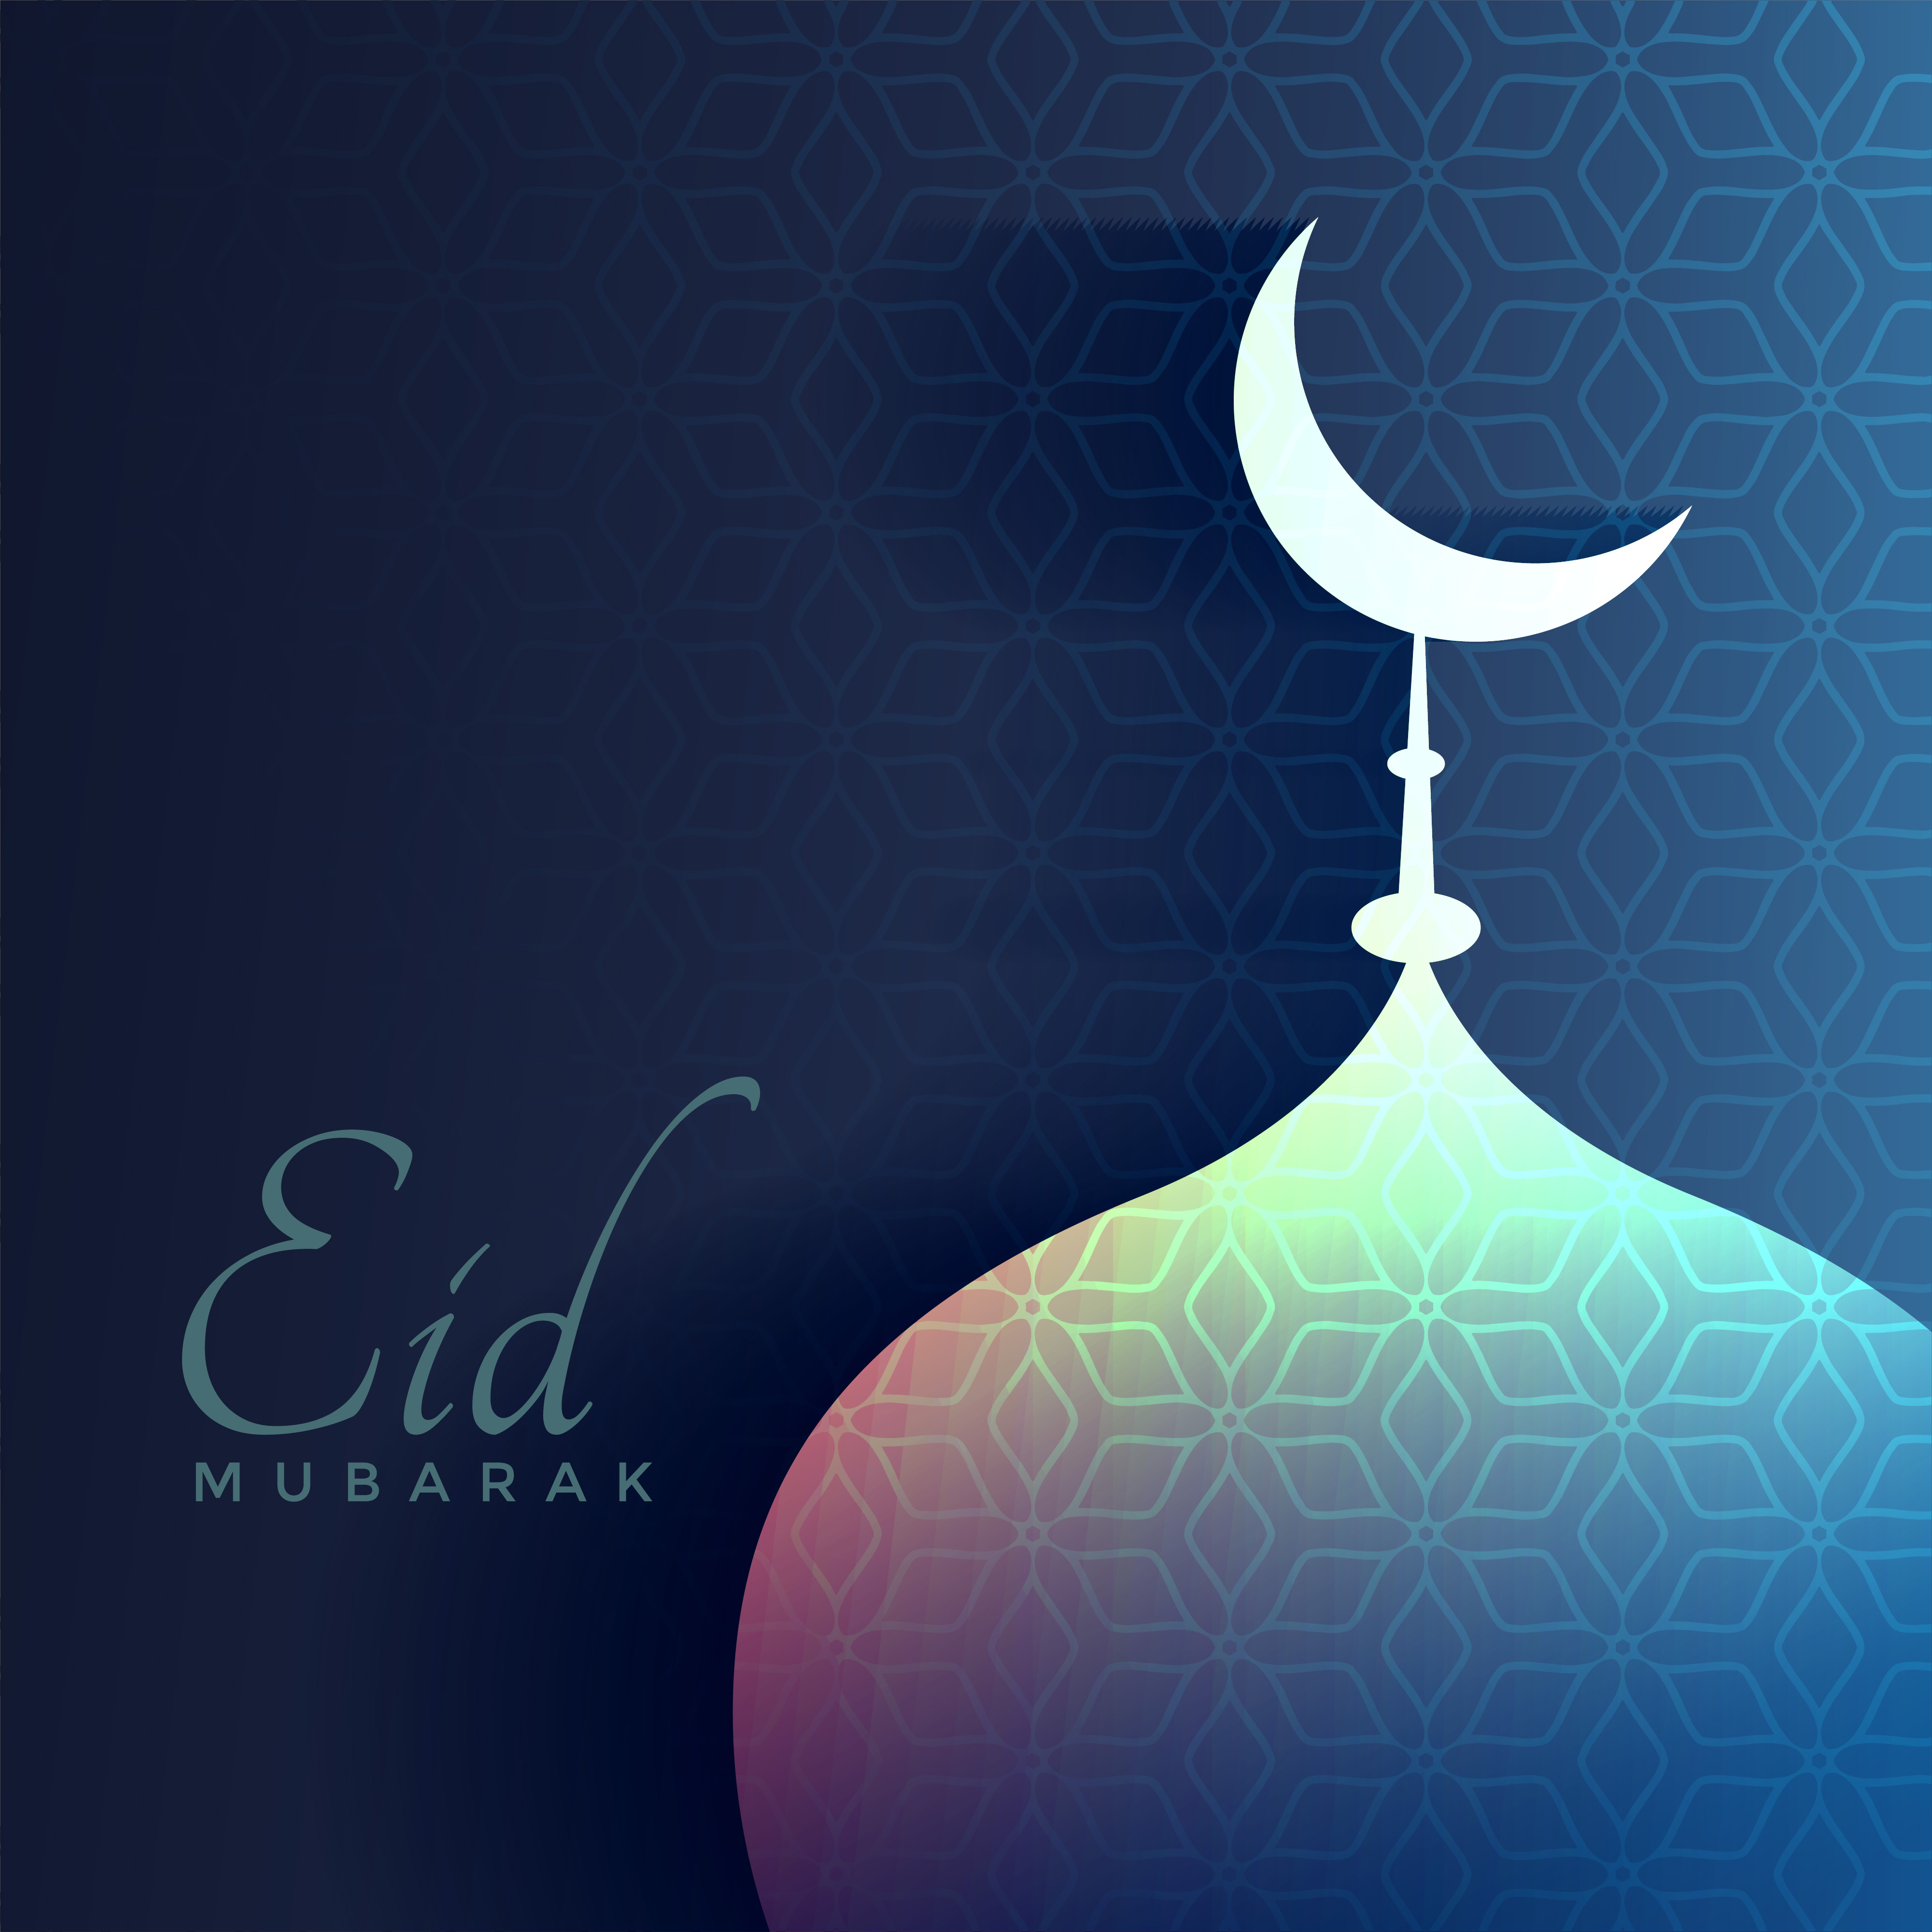 eid mubarak greeting with shiny mosque and moon